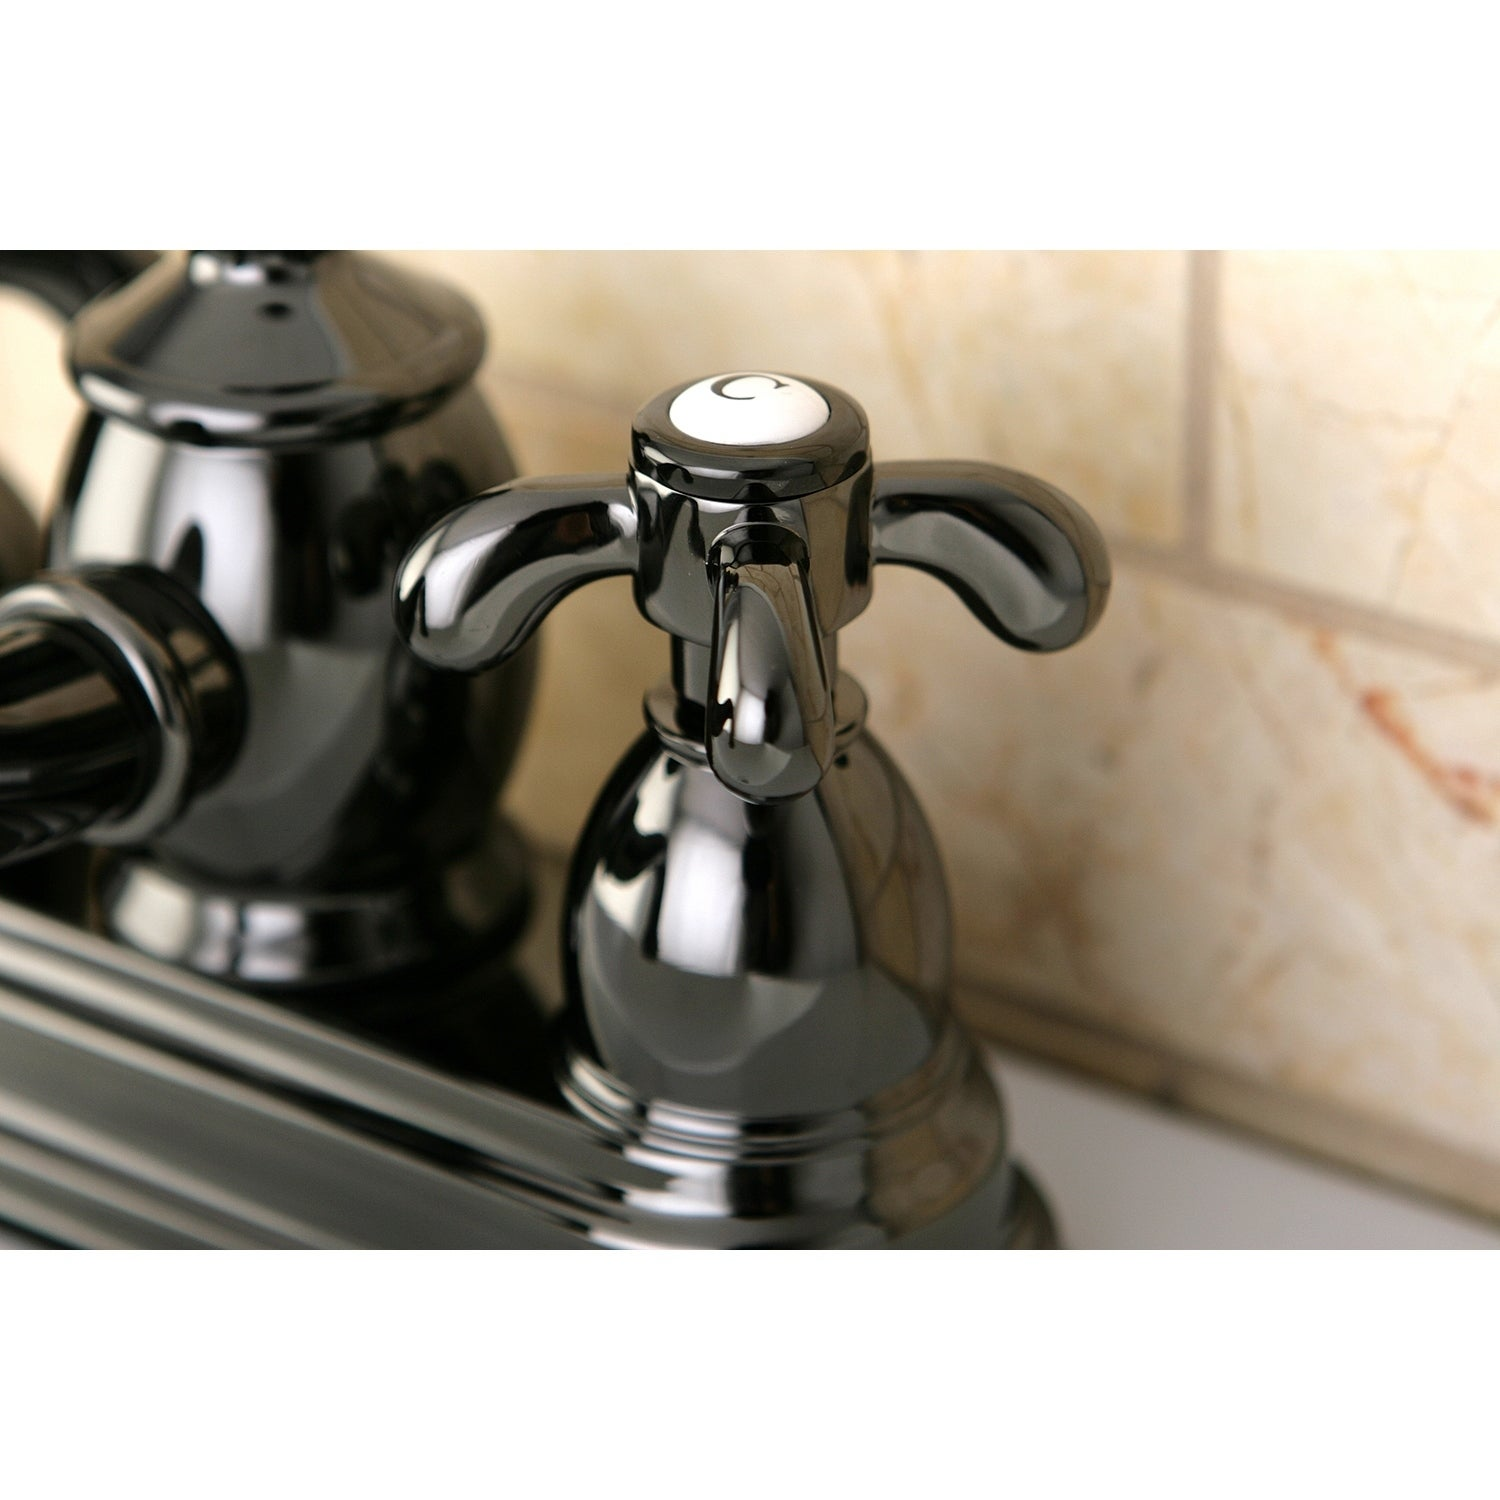 Victorian Spout Black Stainless Steel Bathroom Faucet - Free ...